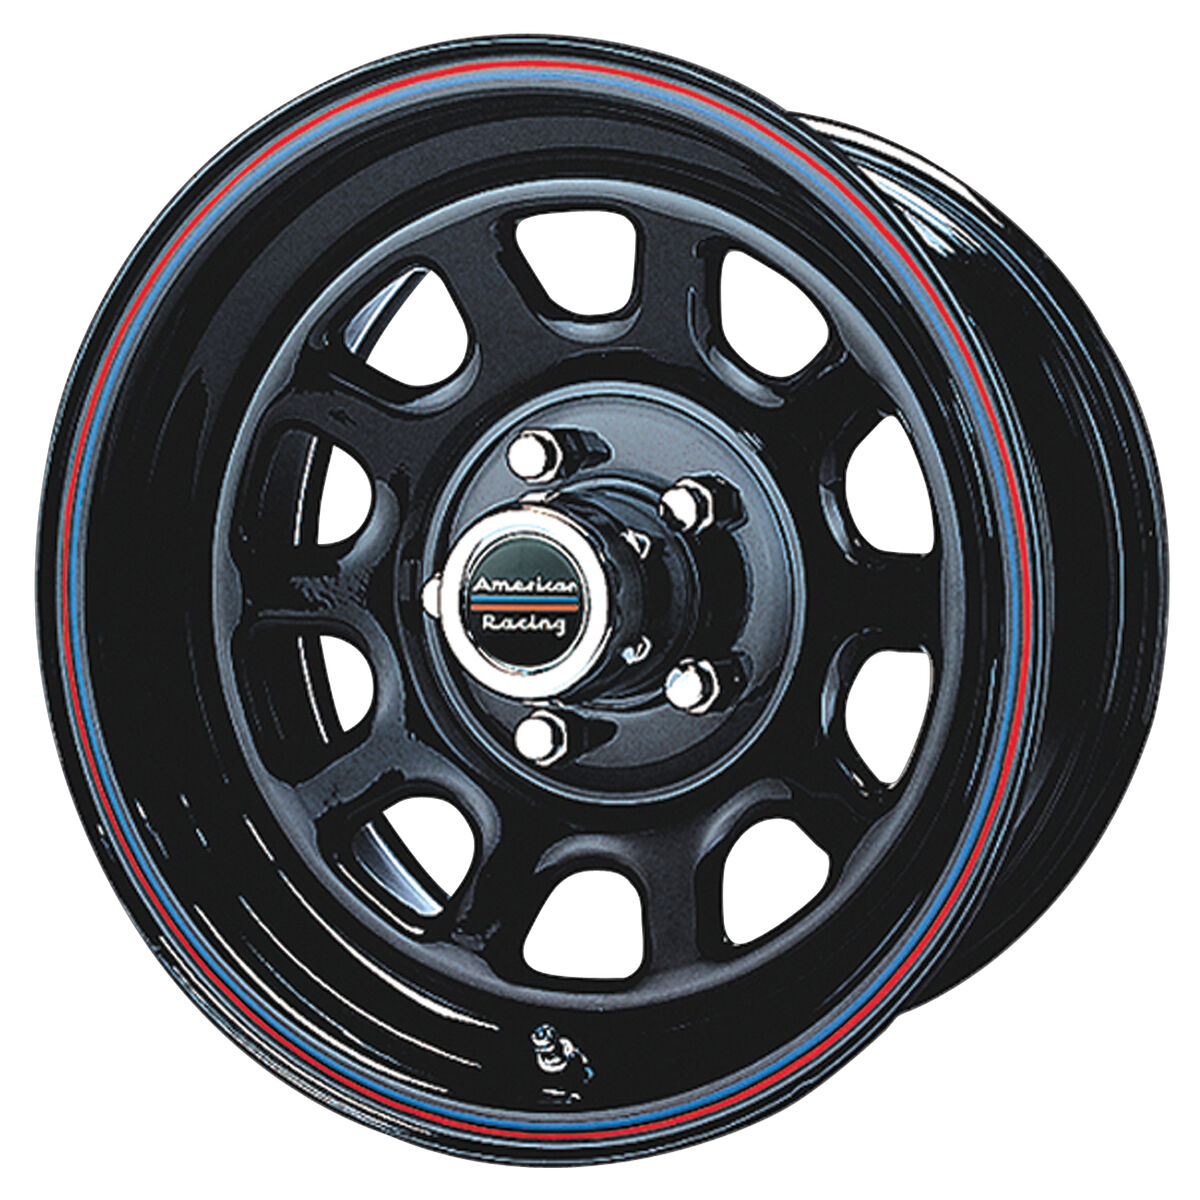 16x7 American Racing 767 Black Wheel/Rim(s) 6x139.7 6 139.7 6x5.5 16 7